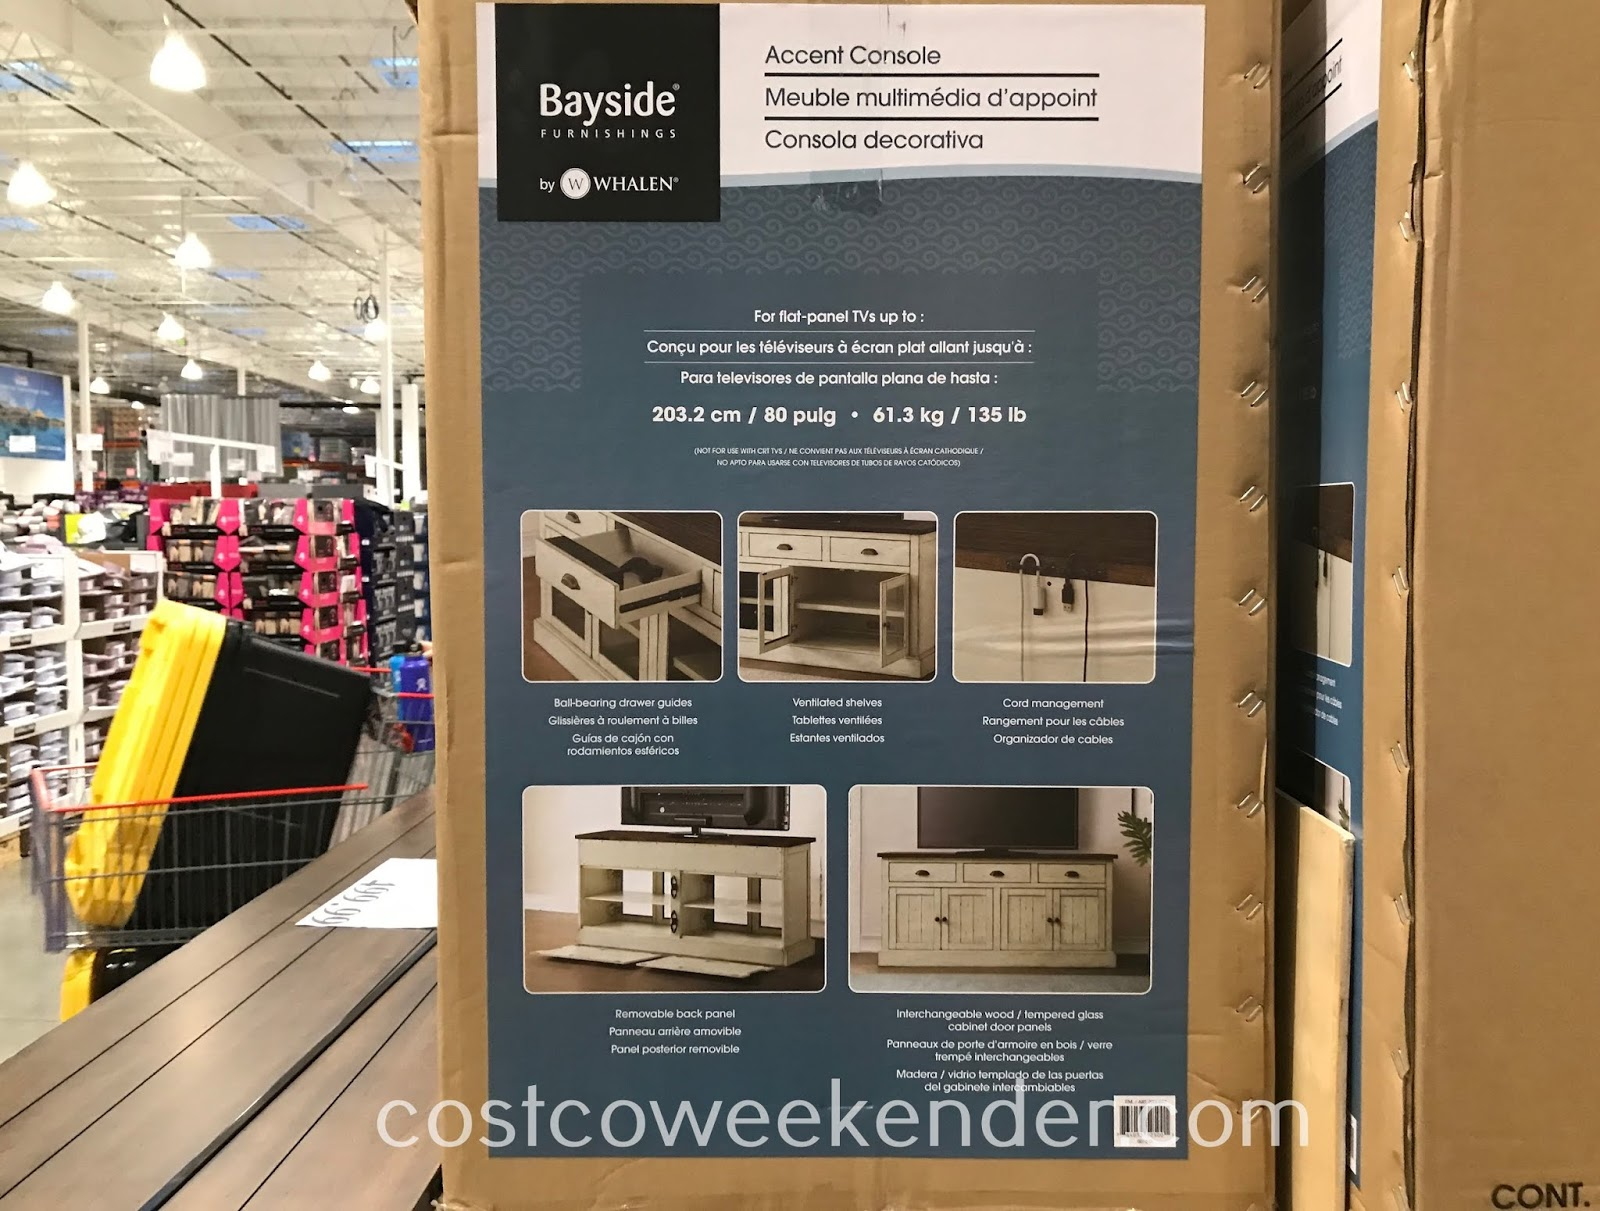 Costco 2000897 - Bayside Furnishings Accent Console: great for your living room or family room